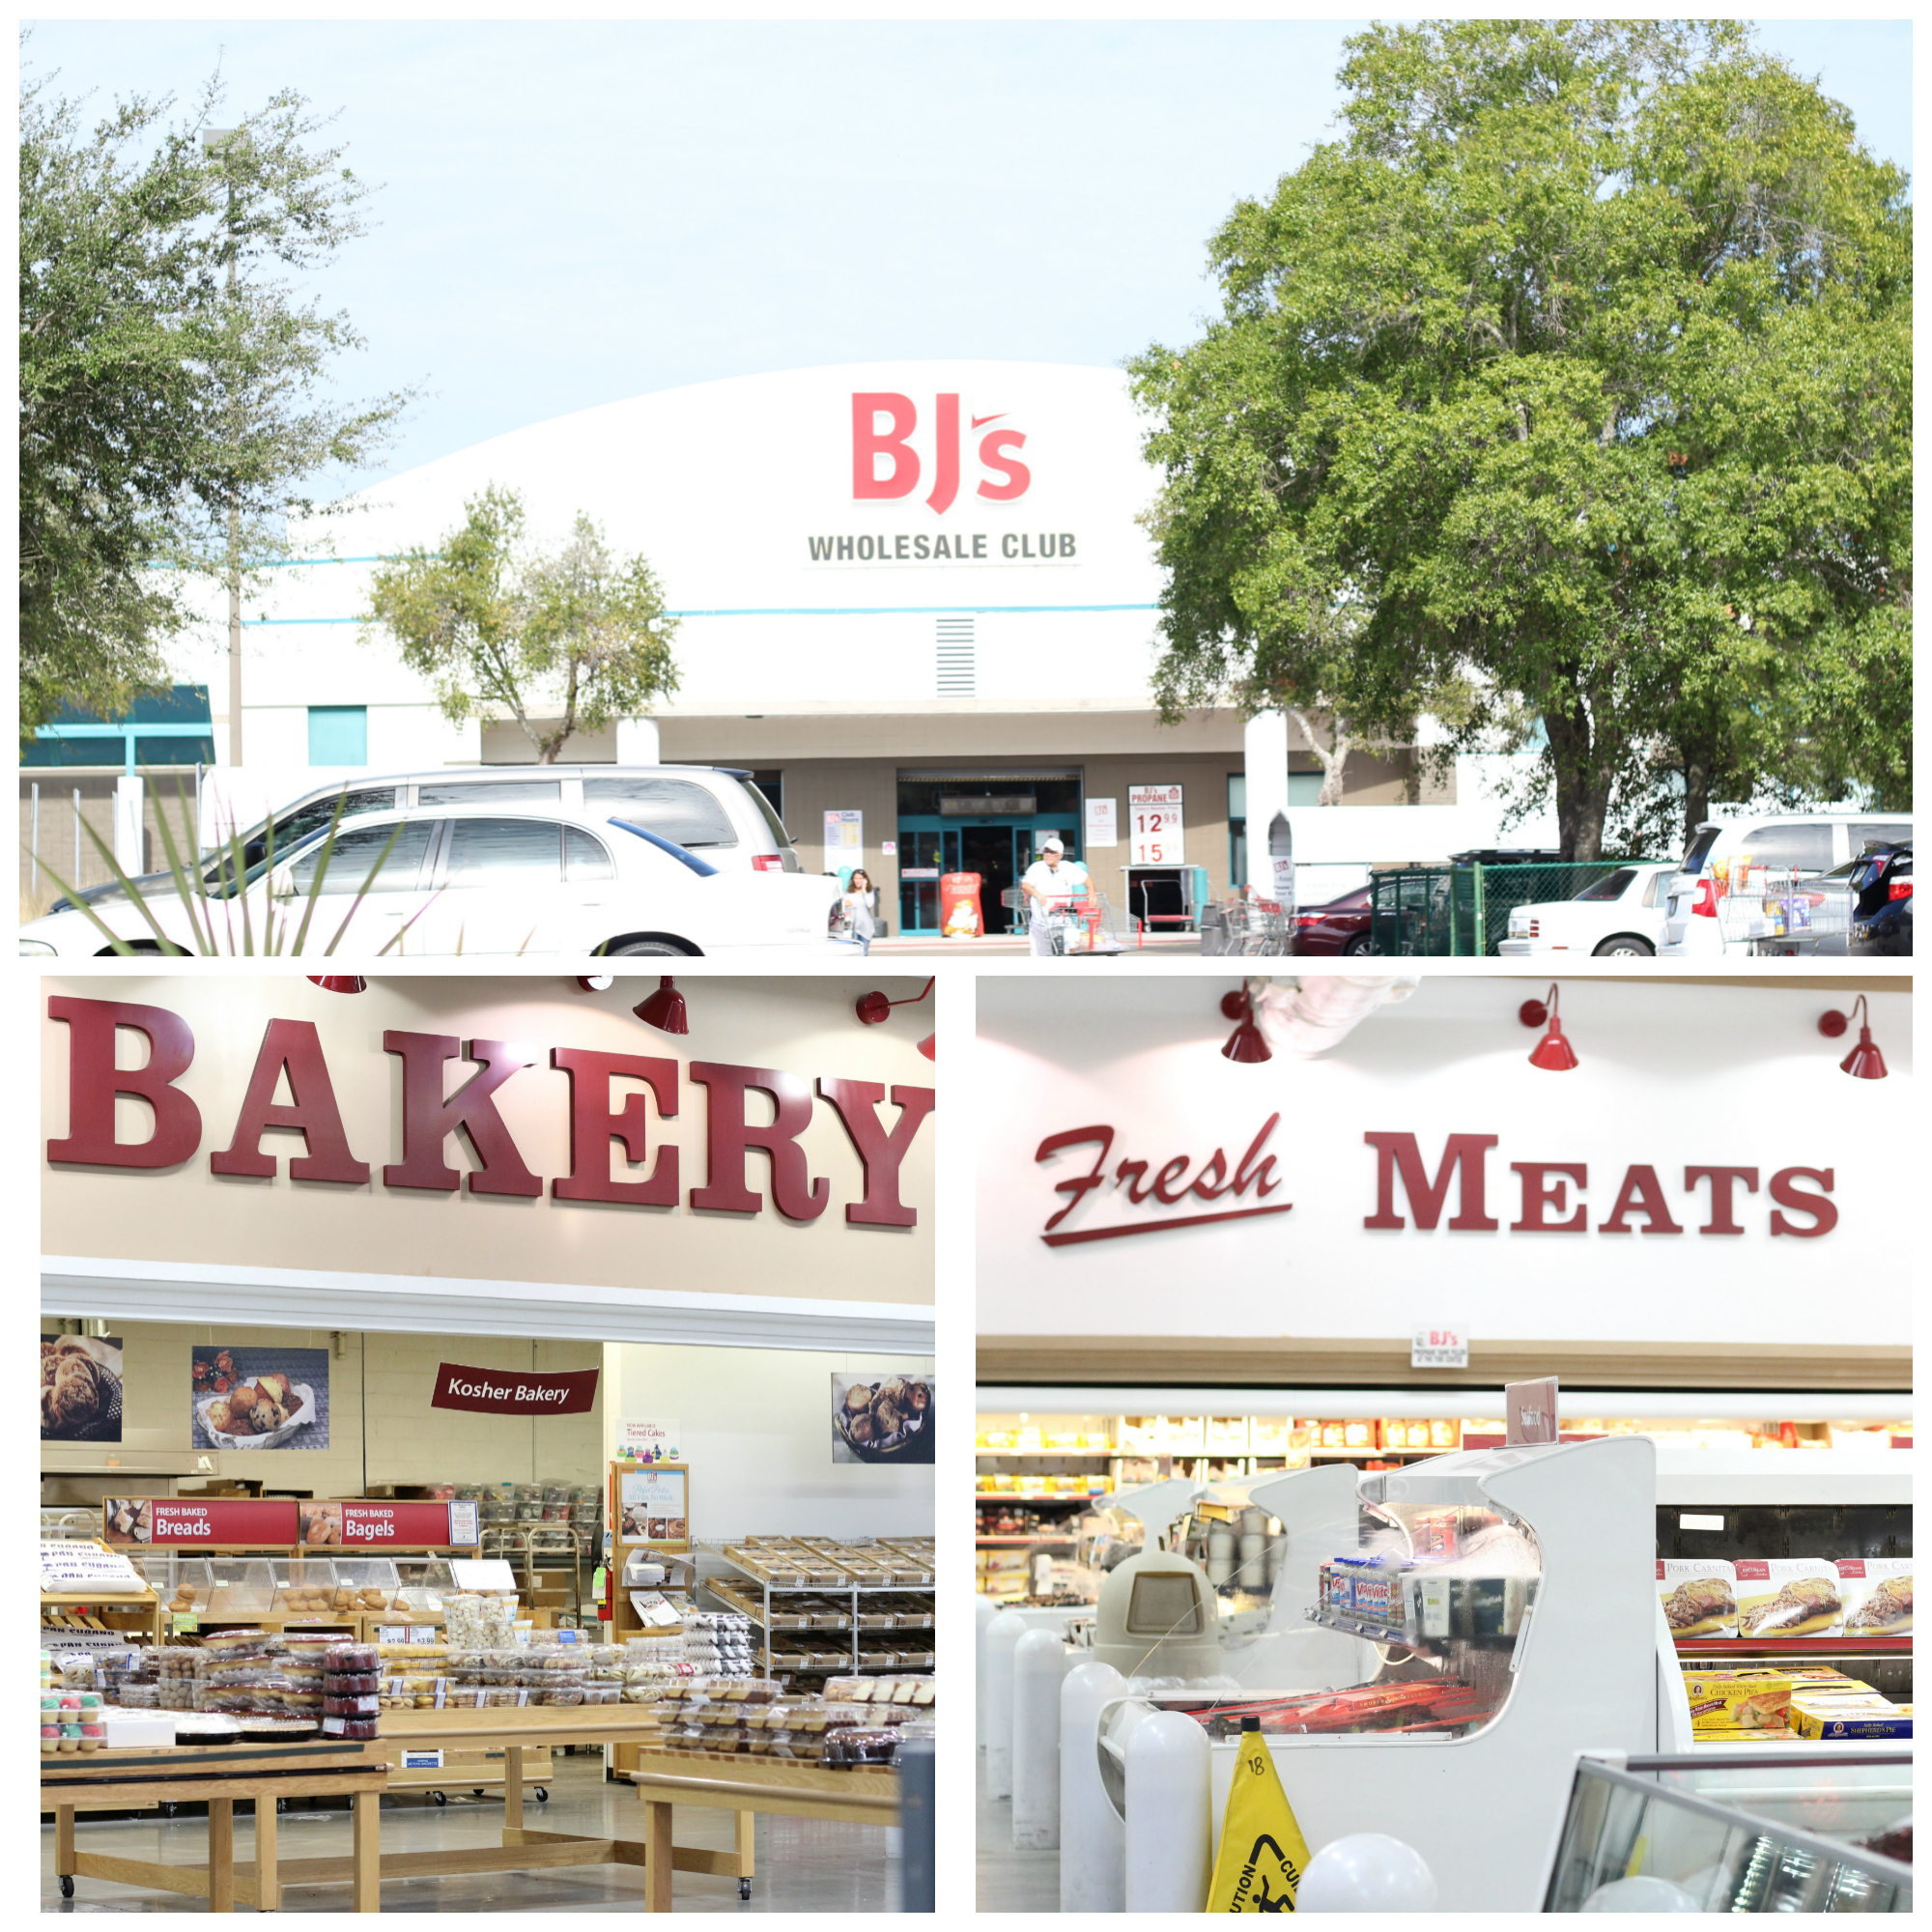 BJs Wholesale Club - Fresh Products